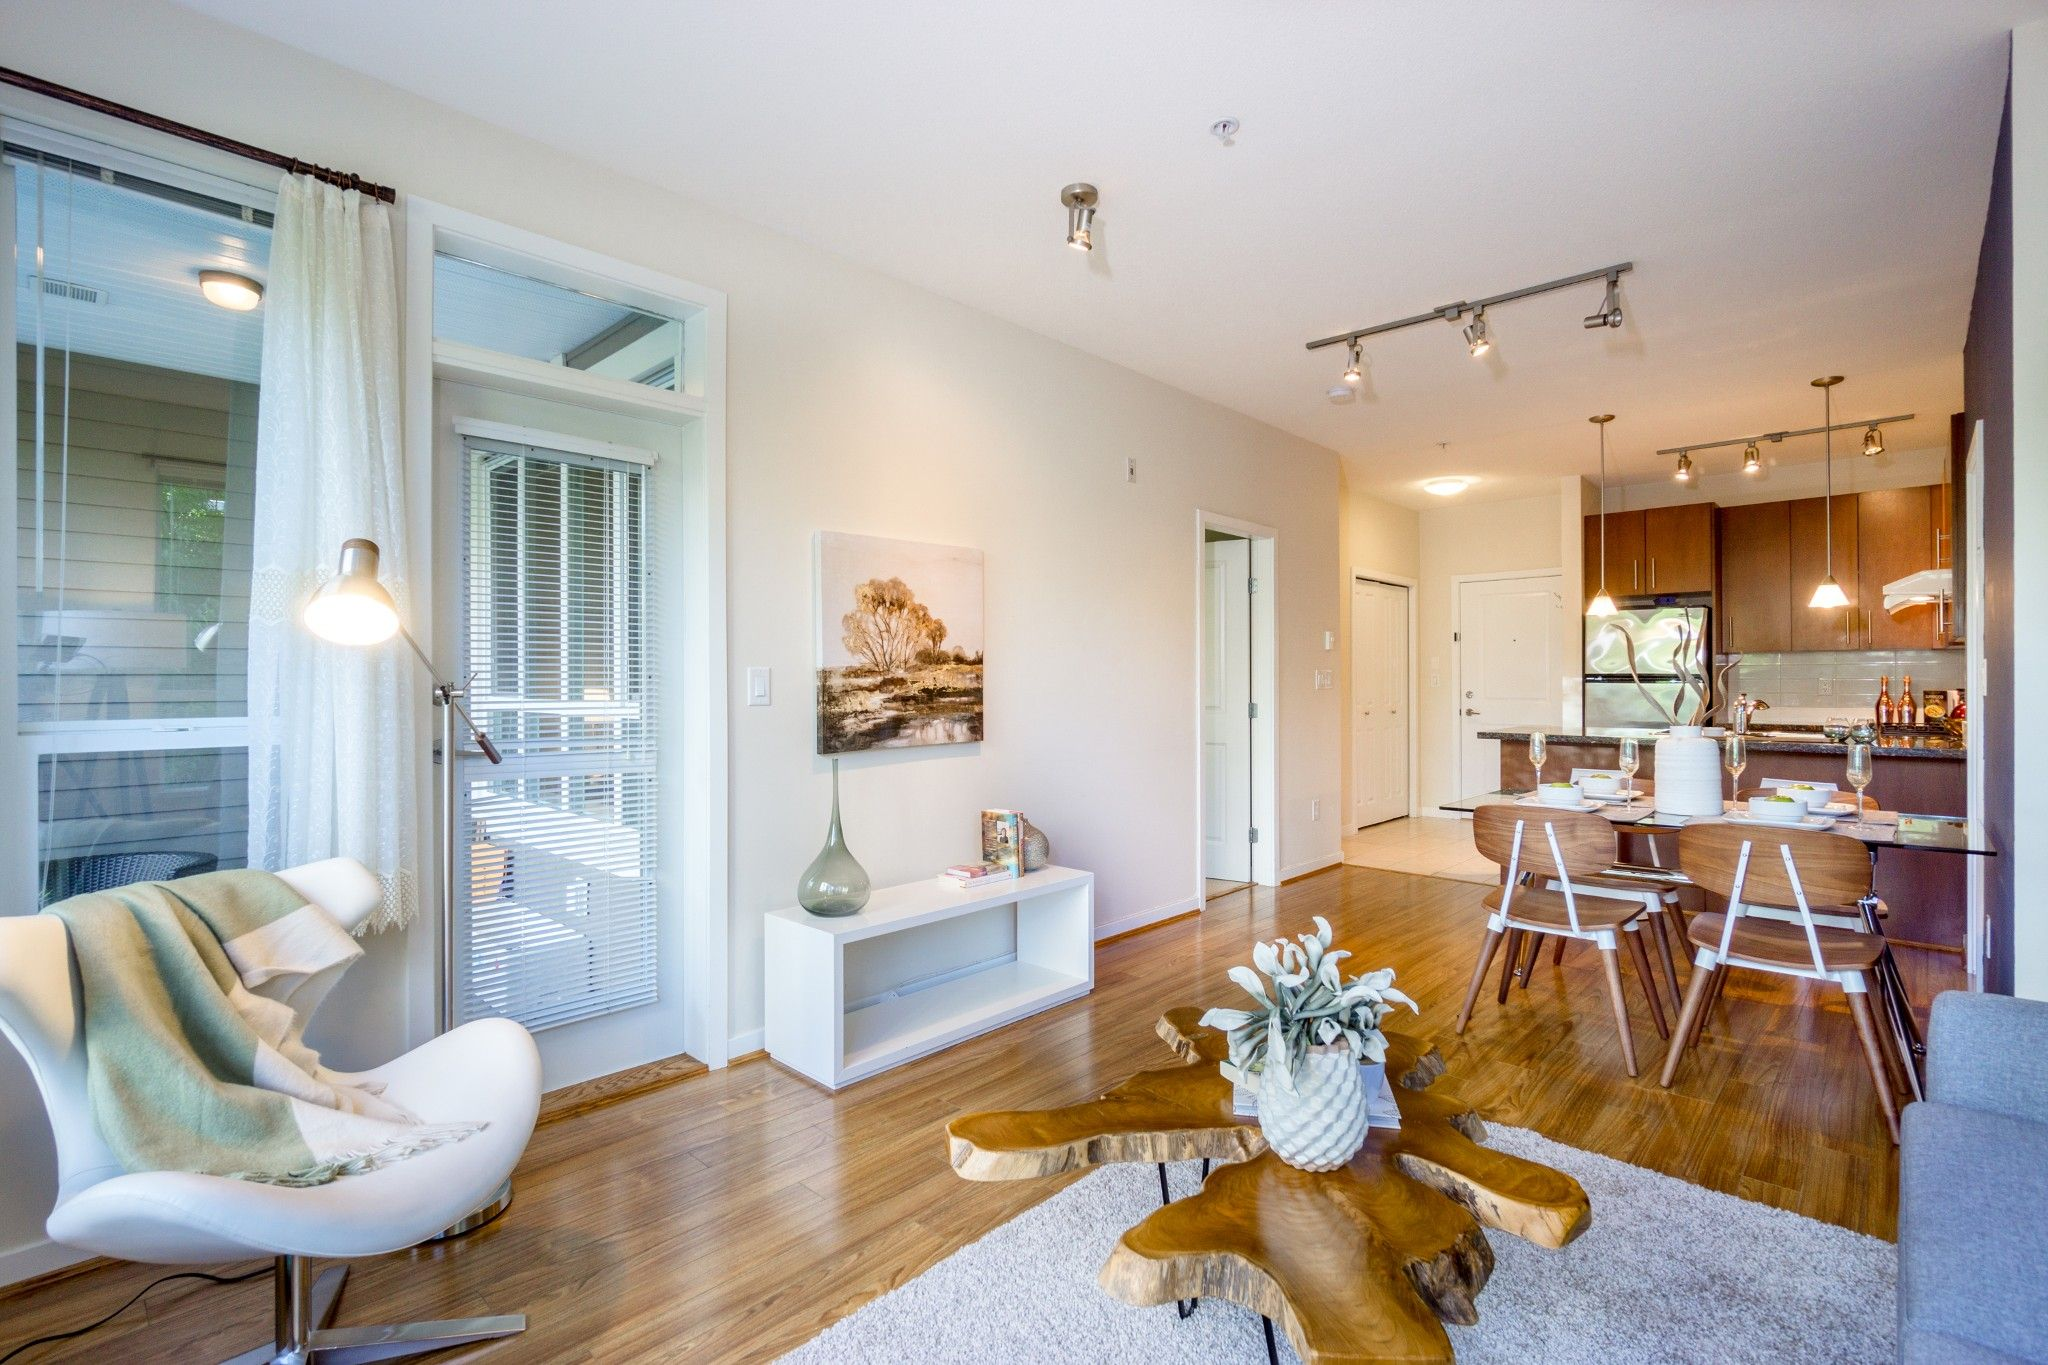 Photo 3: Photos: 208 3551 FOSTER Avenue in Vancouver: Collingwood VE Condo for sale (Vancouver East)  : MLS®# R2291555